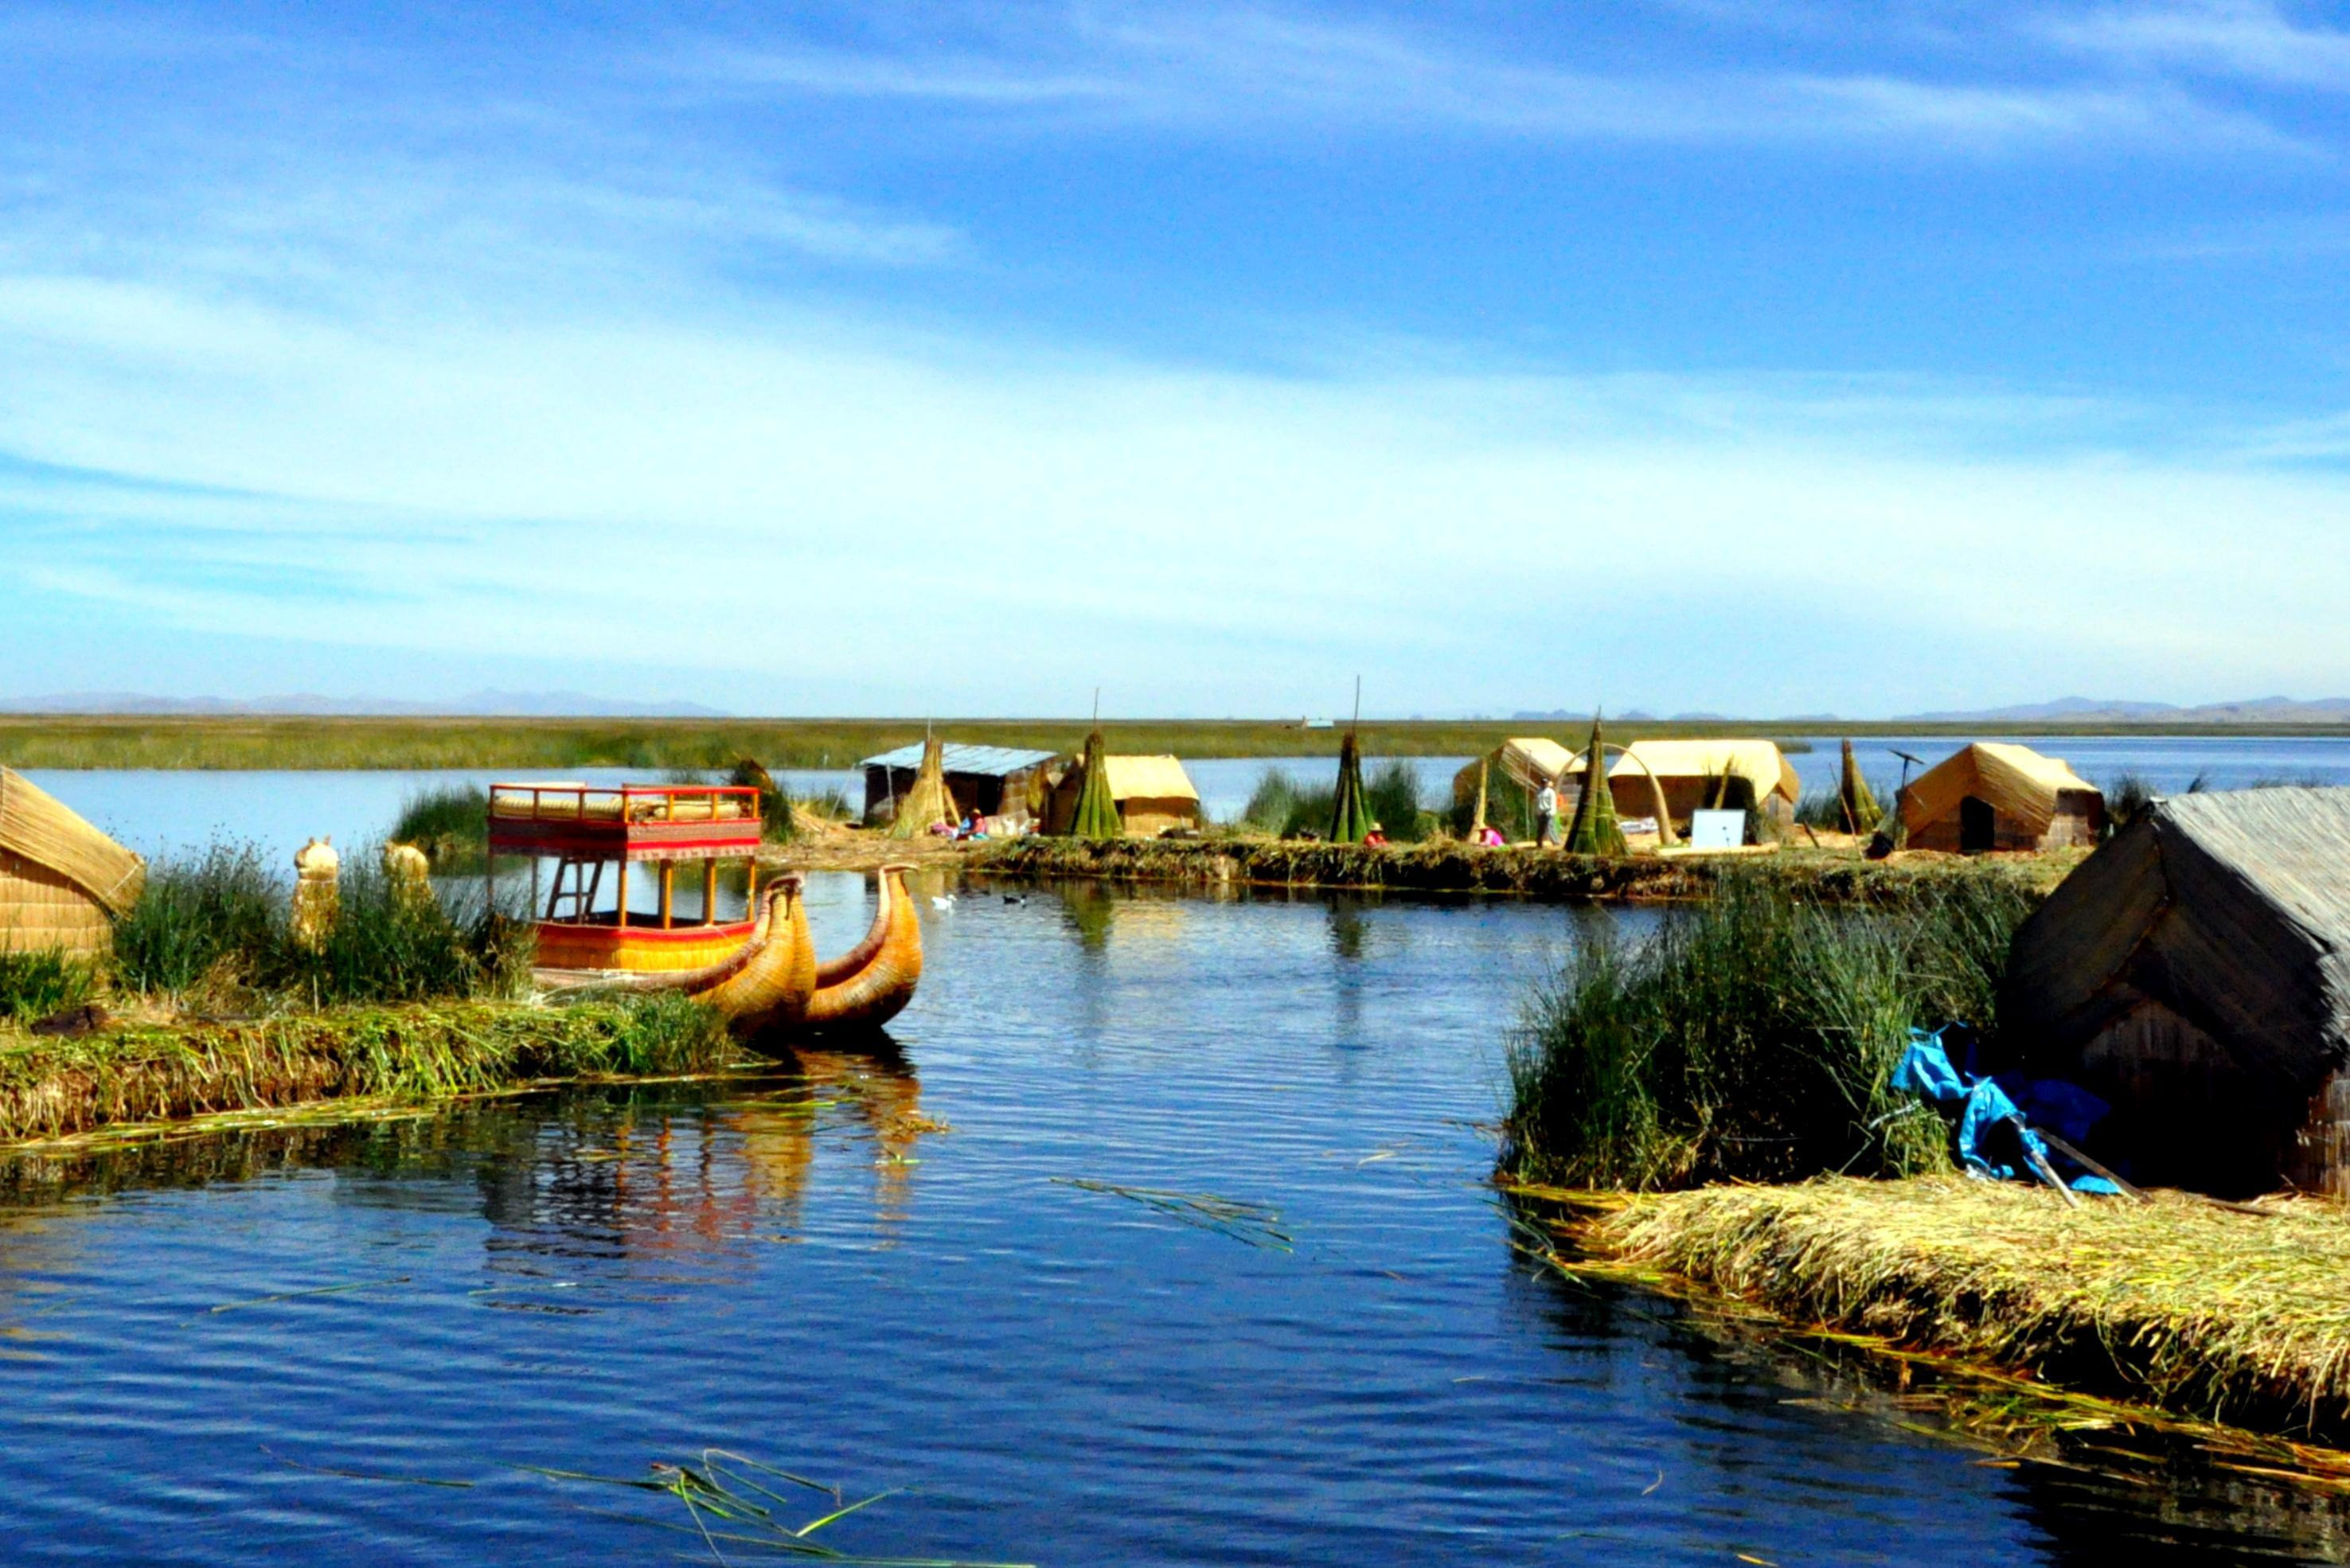 Lake Titicaca Day Trips from La Paz